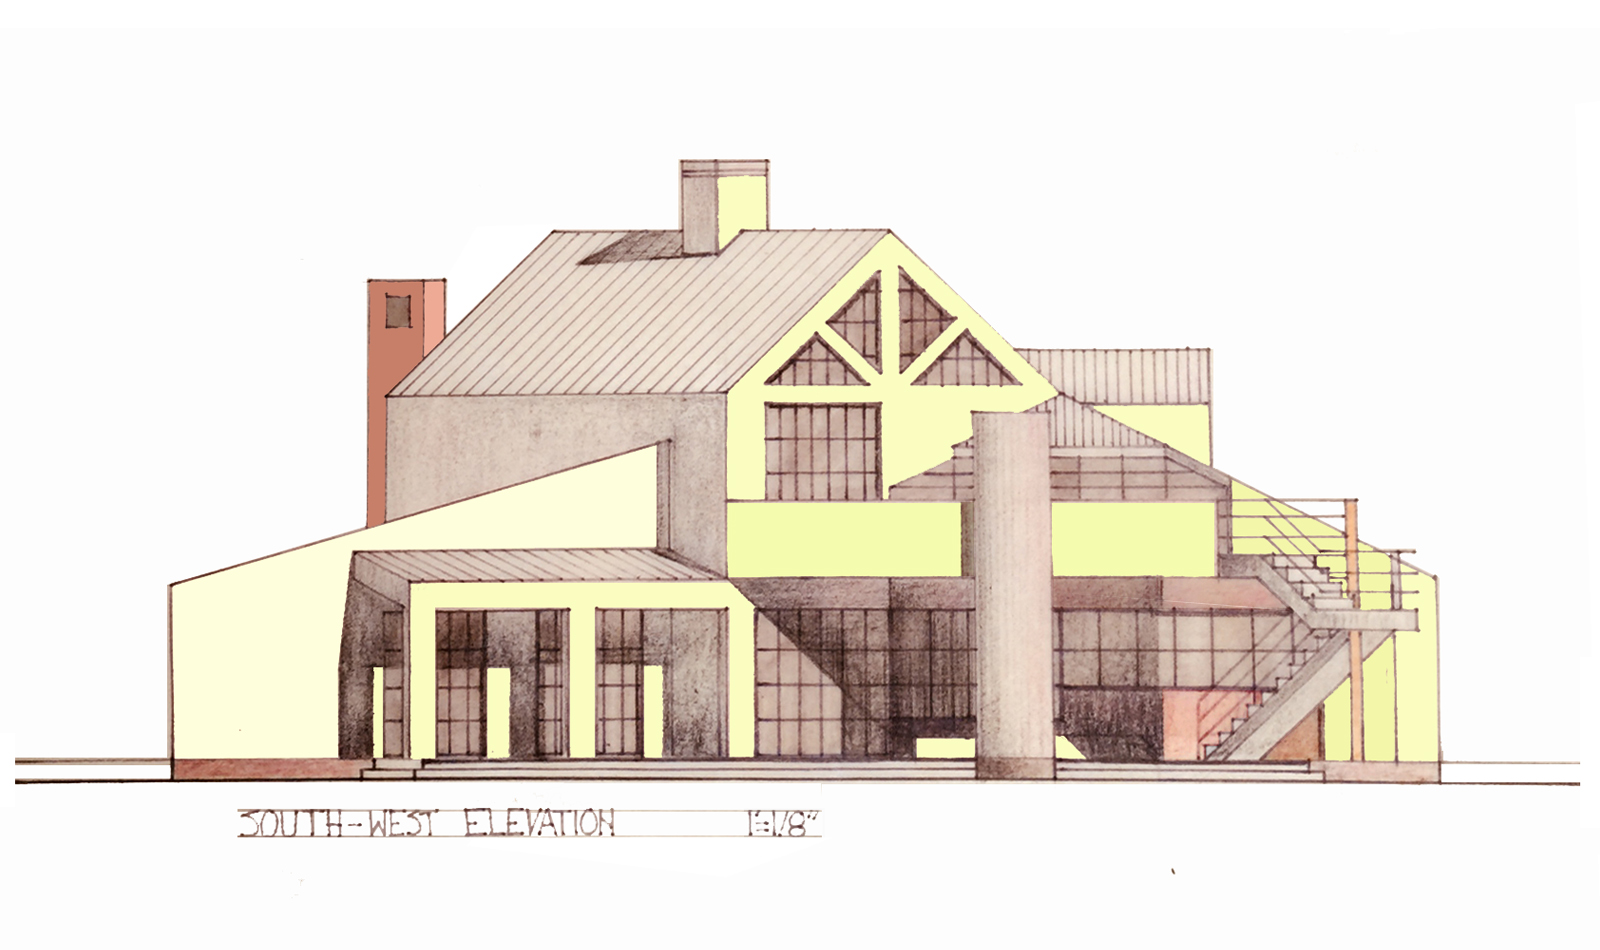 RAMEZANI-HOUSE/SOUTH-WEST-ELEVATION.jpg